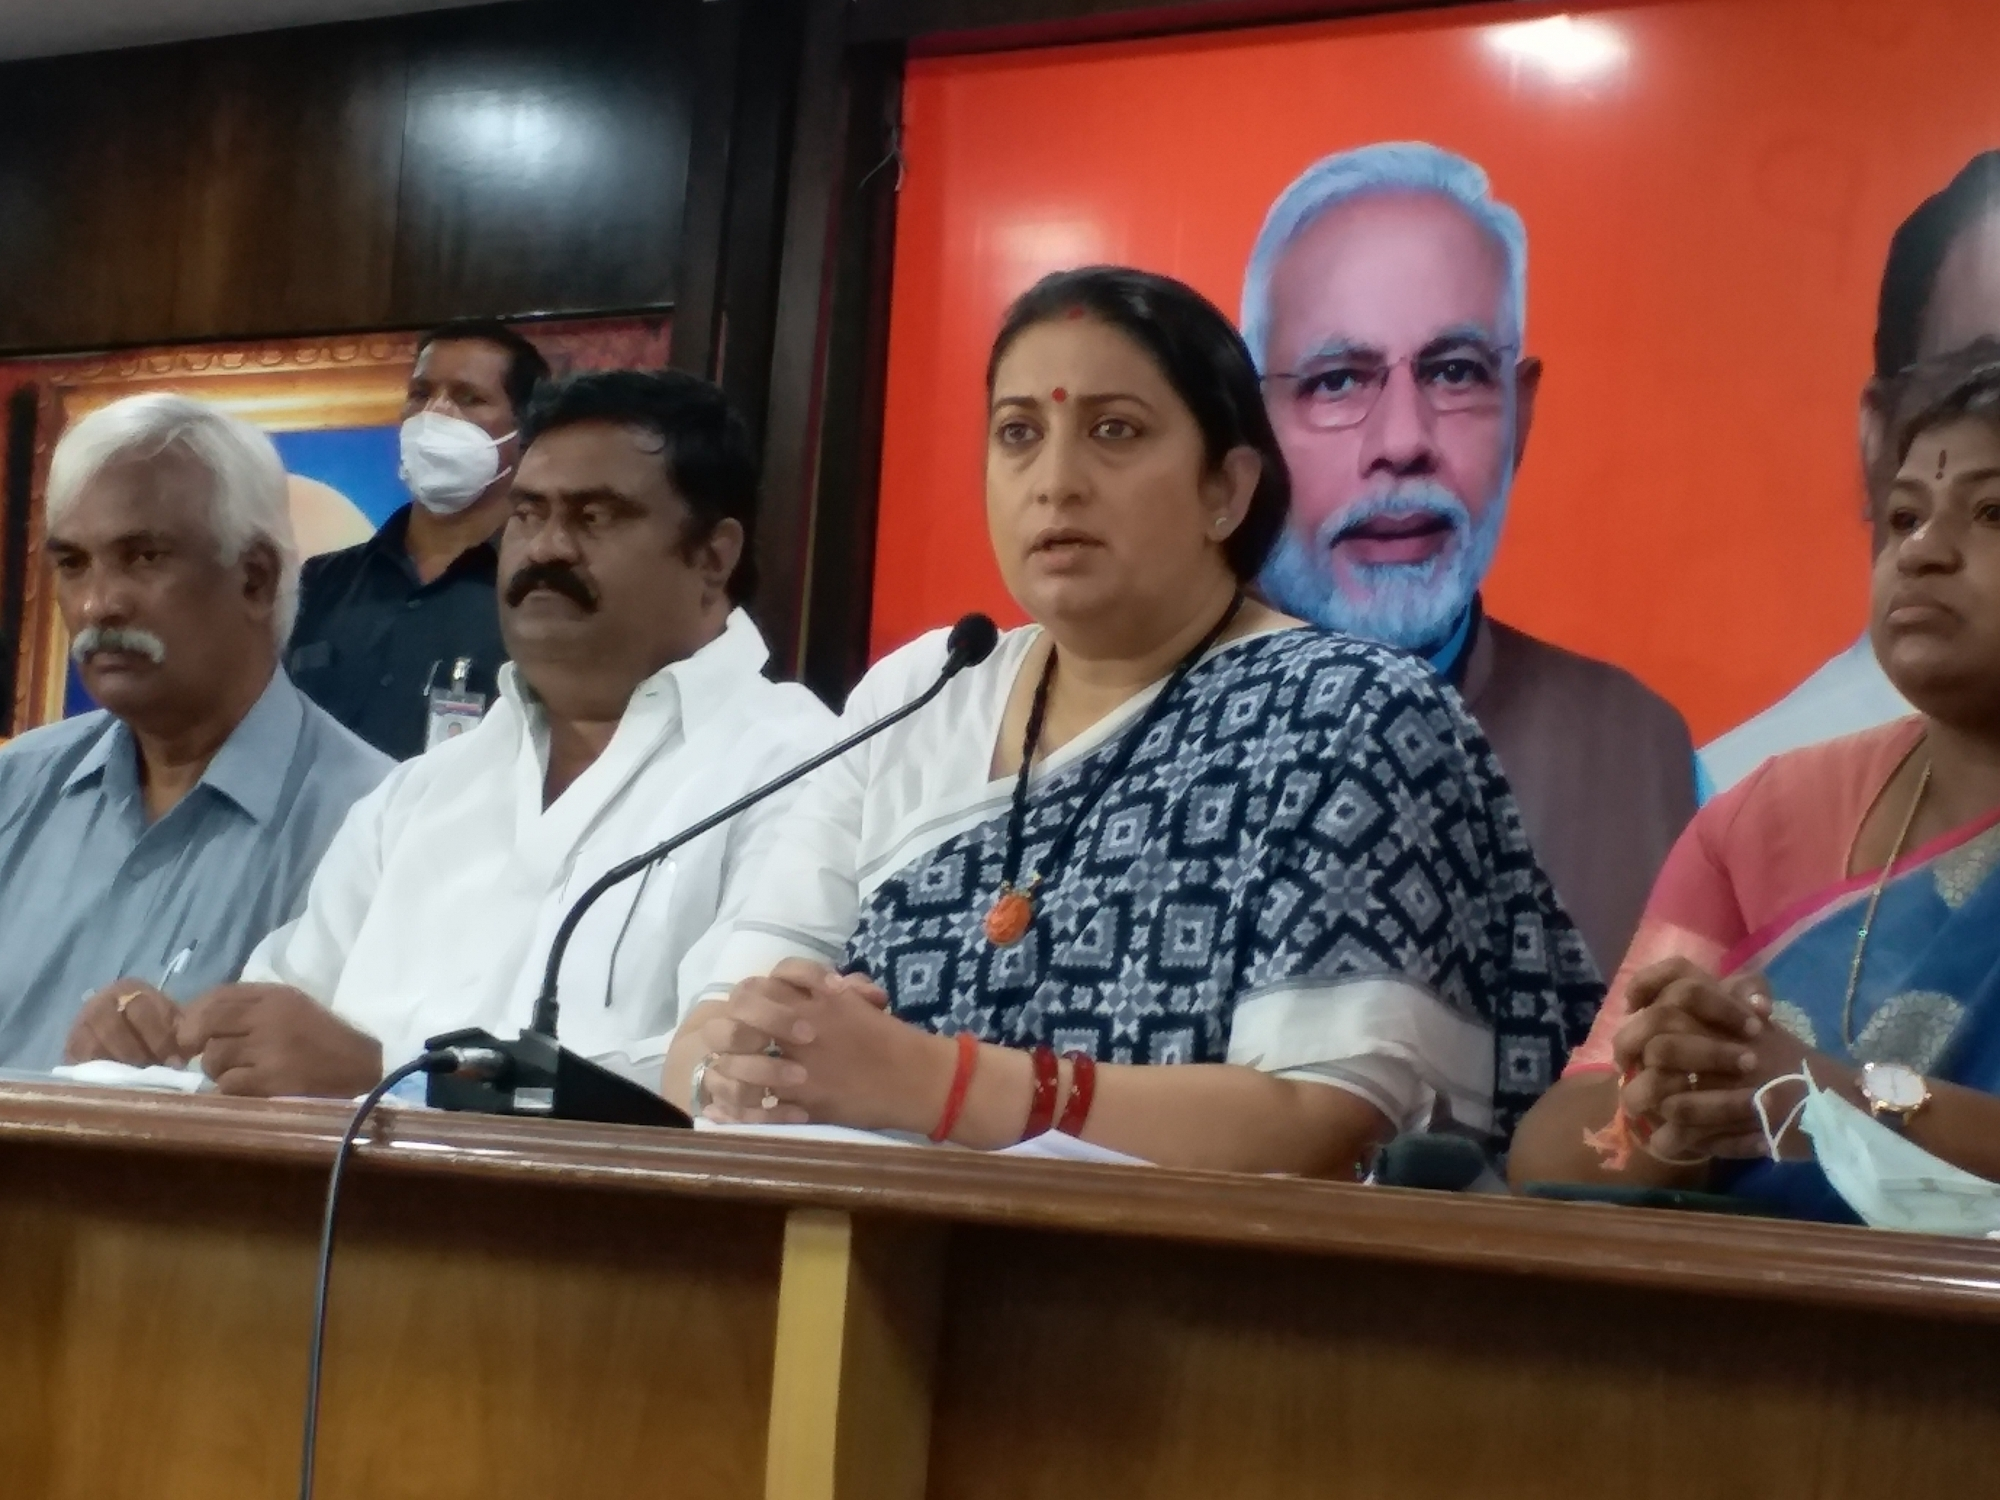 Hyderabad: Union Minister and BJP leader Smriti Irani addresses a press conference in Hyderabad on Nov 25, 2020. Union minister of Textiles Smriti Irani on Wednesday alleged that the 'unholy' alliance of the TRS-MIM is enlisting illegal immigrants in Hyderabad as voters for their political gains. The Minister is in the city to campaign for the BJP in Greater Hyderabad Municipal Corporation (GHMC) elections. (Photo: IANS)